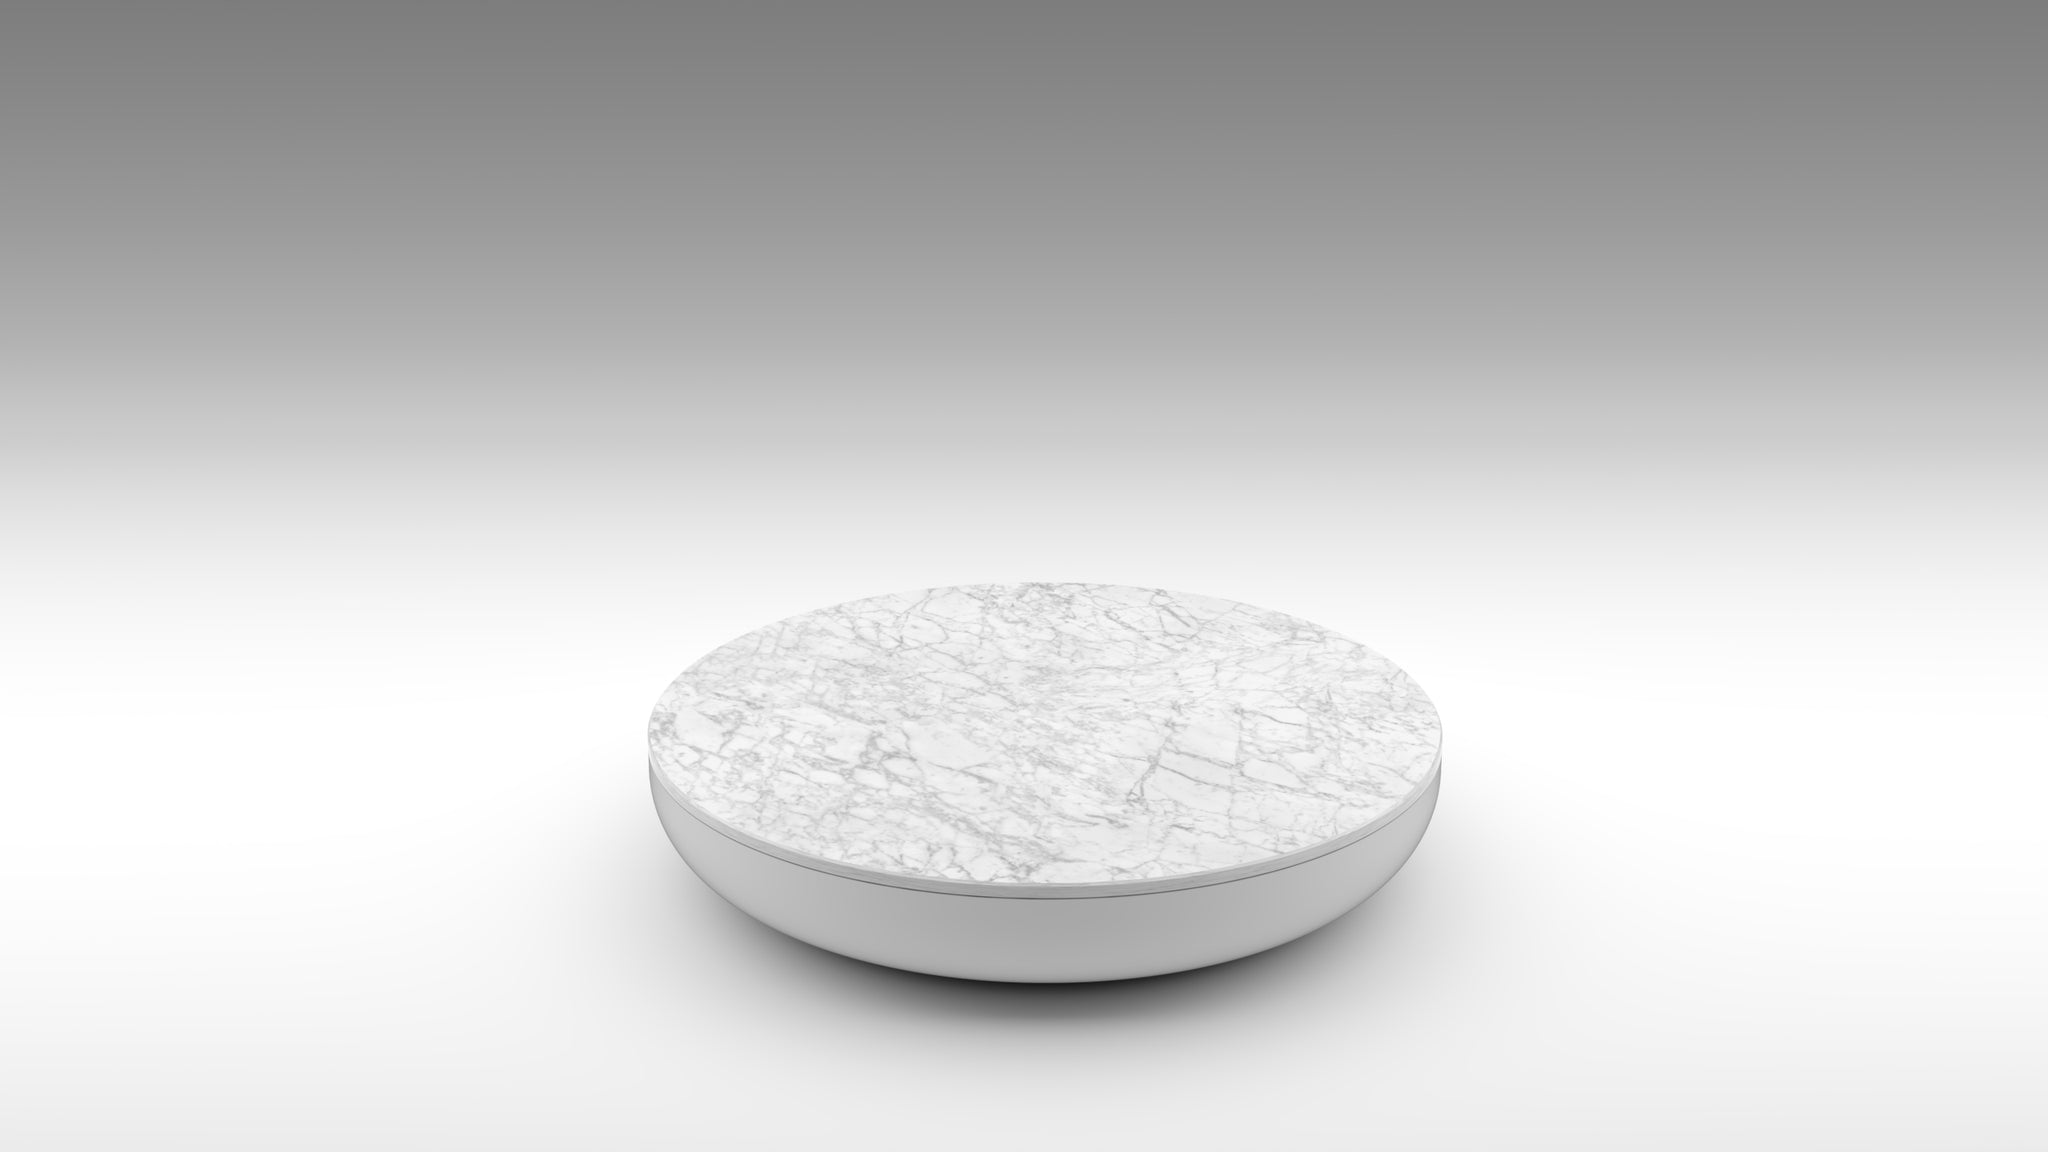 white Carrara, Carrara coffee table, lacquer white coffee table, white coffee table, round marble coffee table, low table, Carrara low table, akar coffee table, half macaron coffee table,